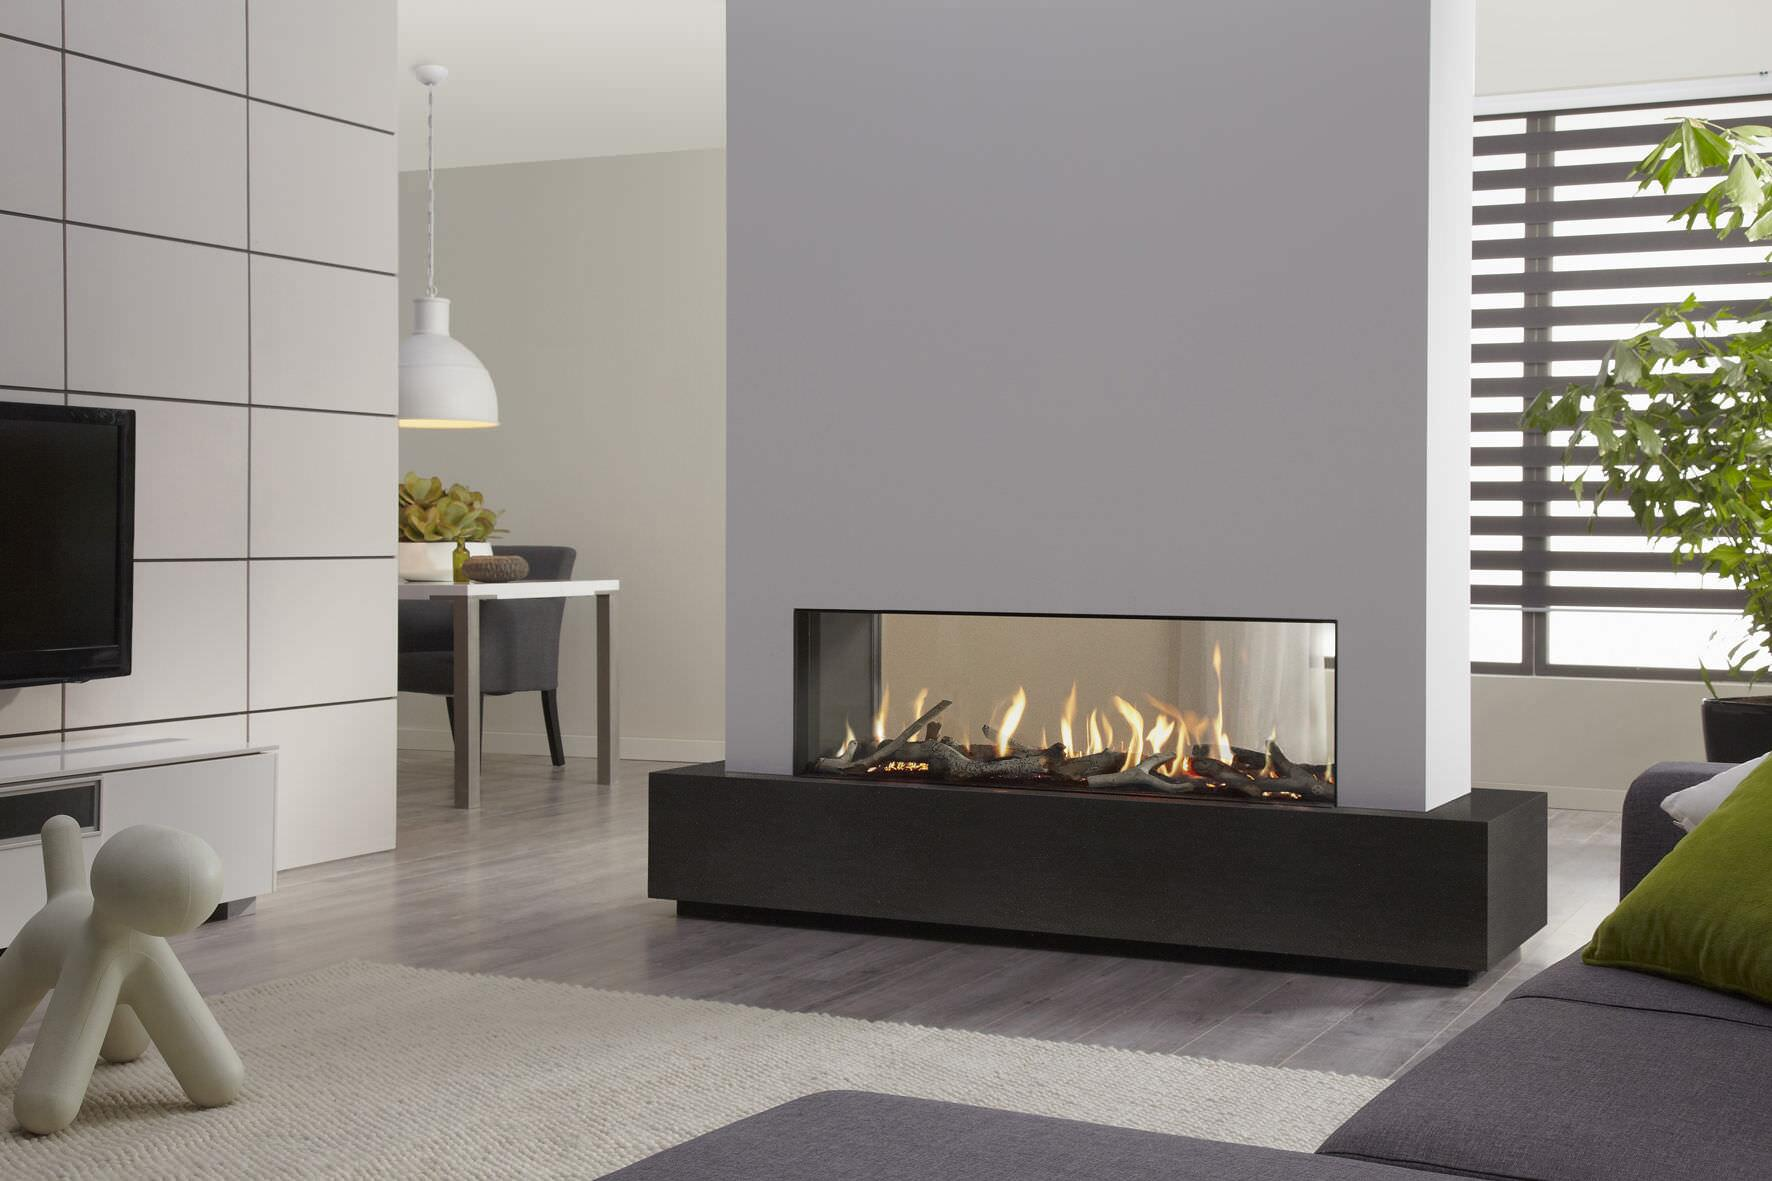 24 Inch Real Fire Automatic Intelligent Smart Ethanol Indoor Fireplace